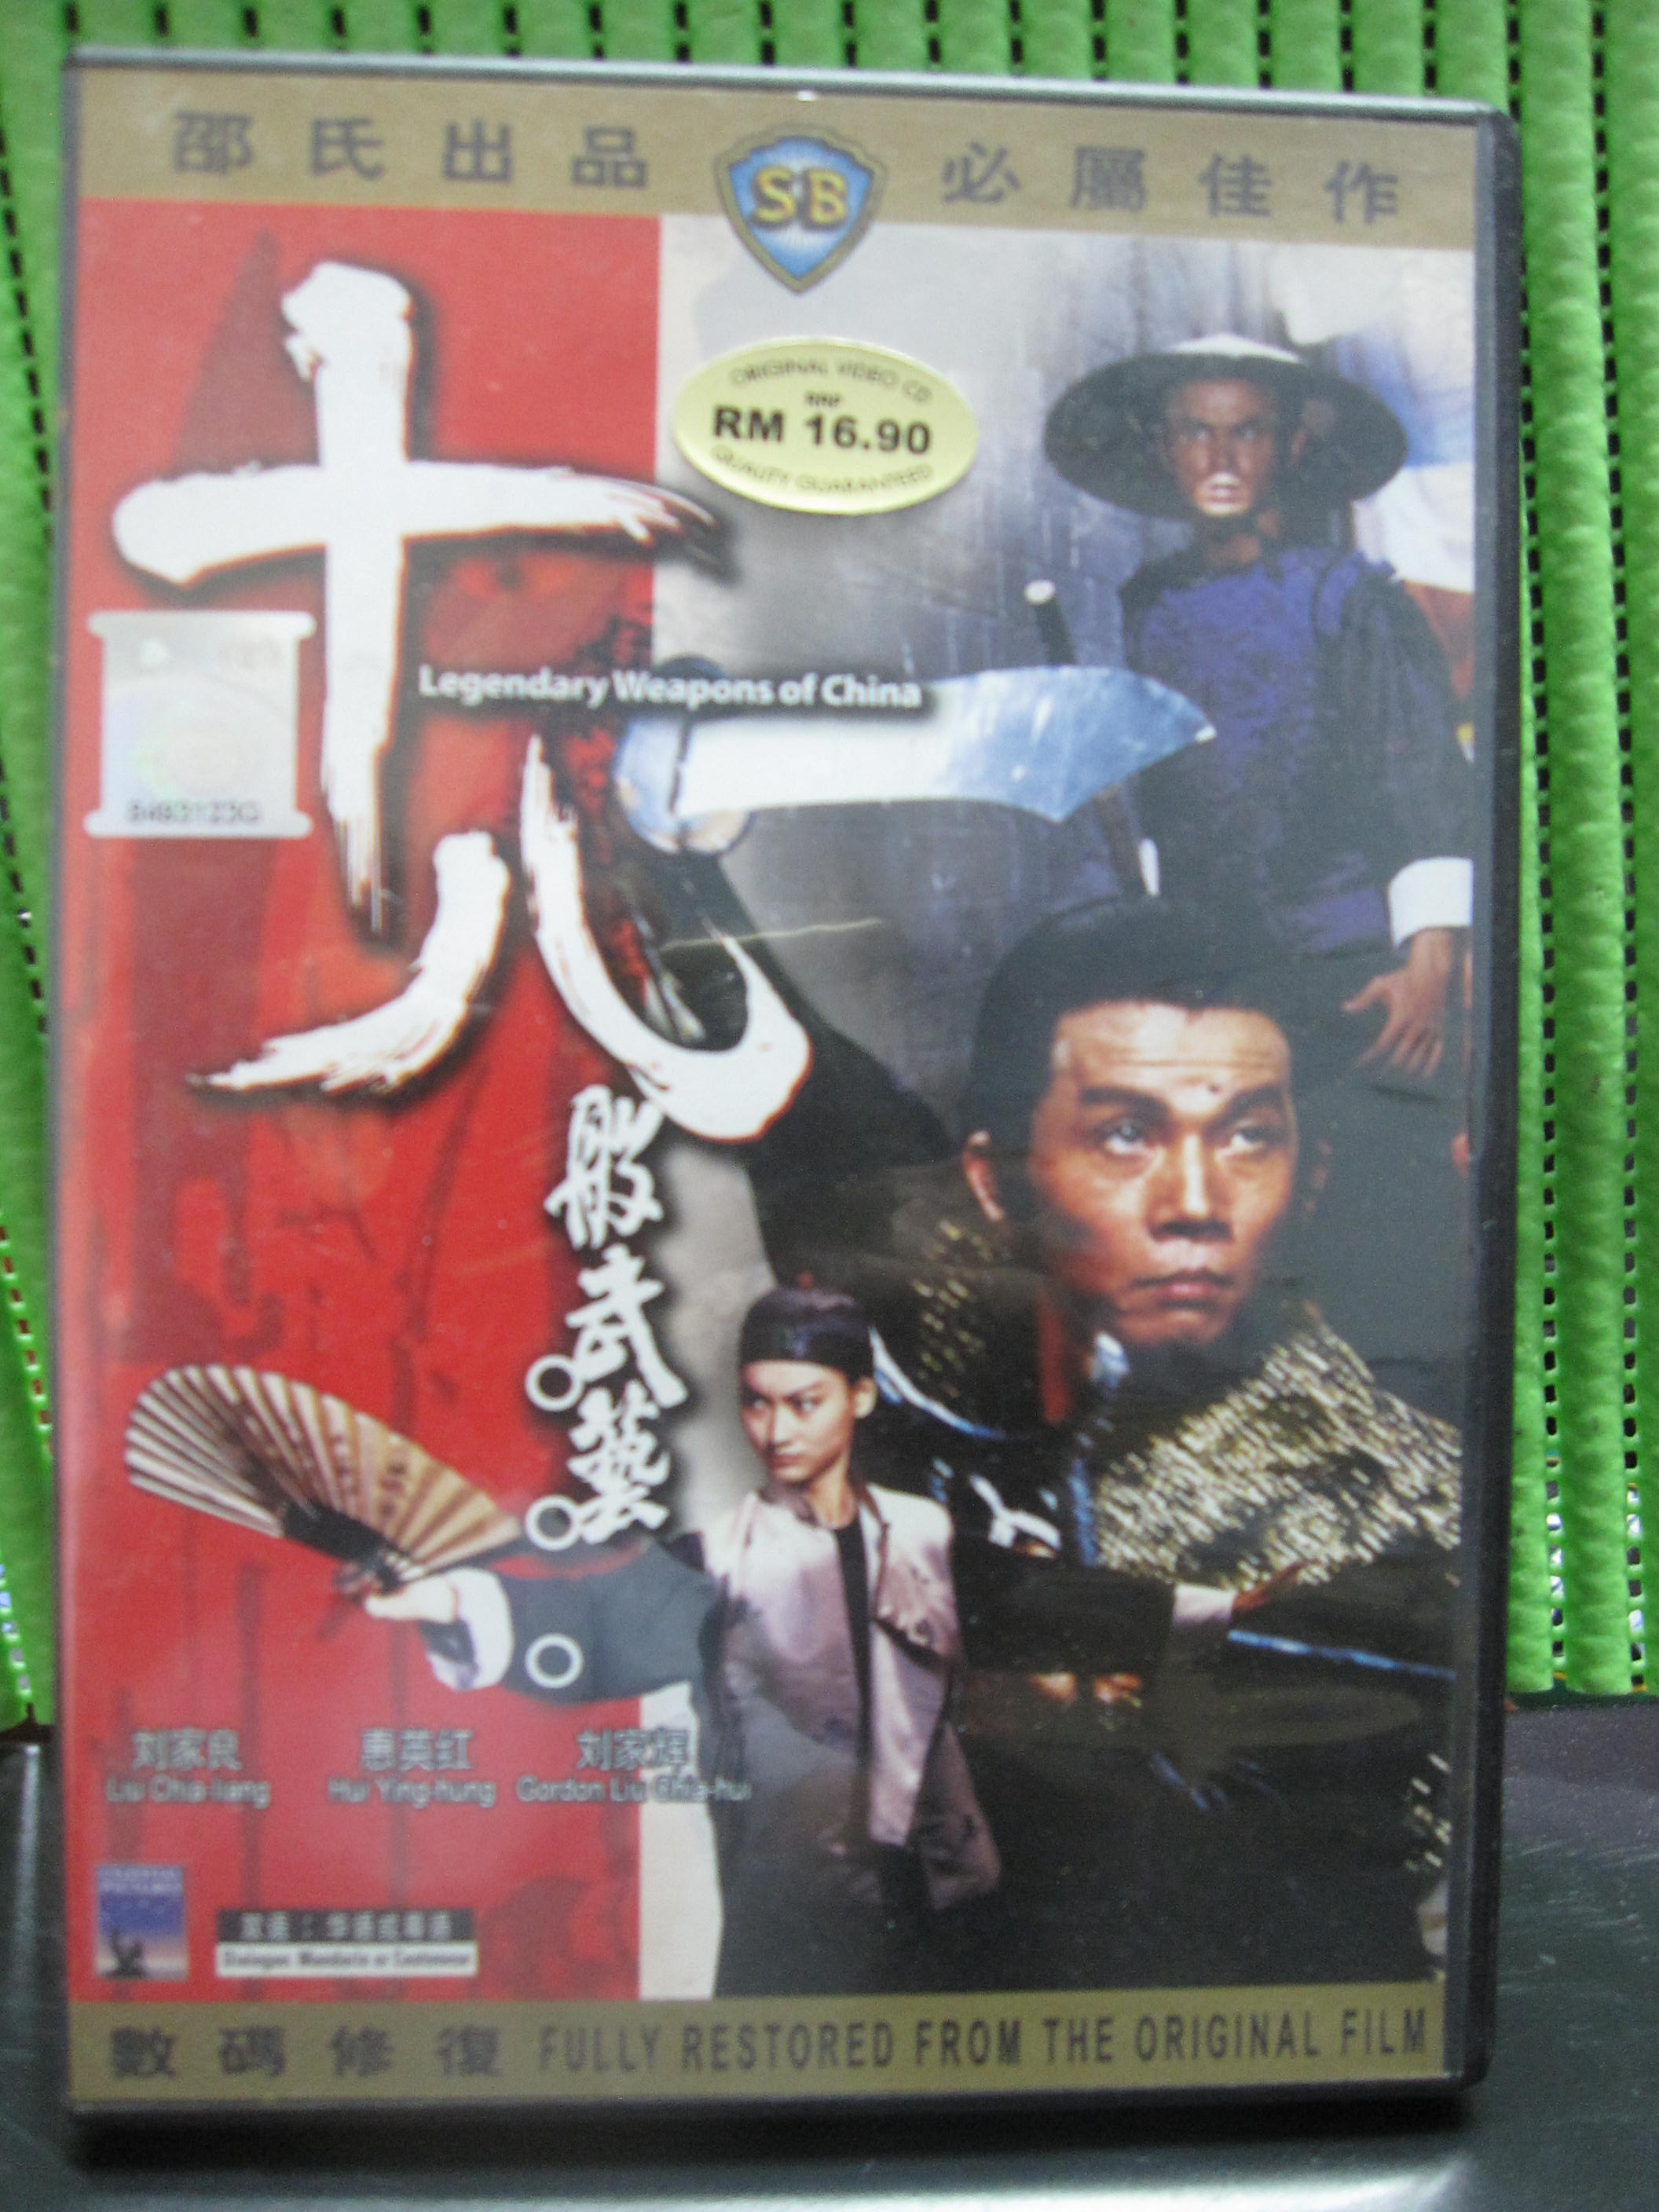 Classic Kung Fu Flick - Legendary Weapons of China VCD